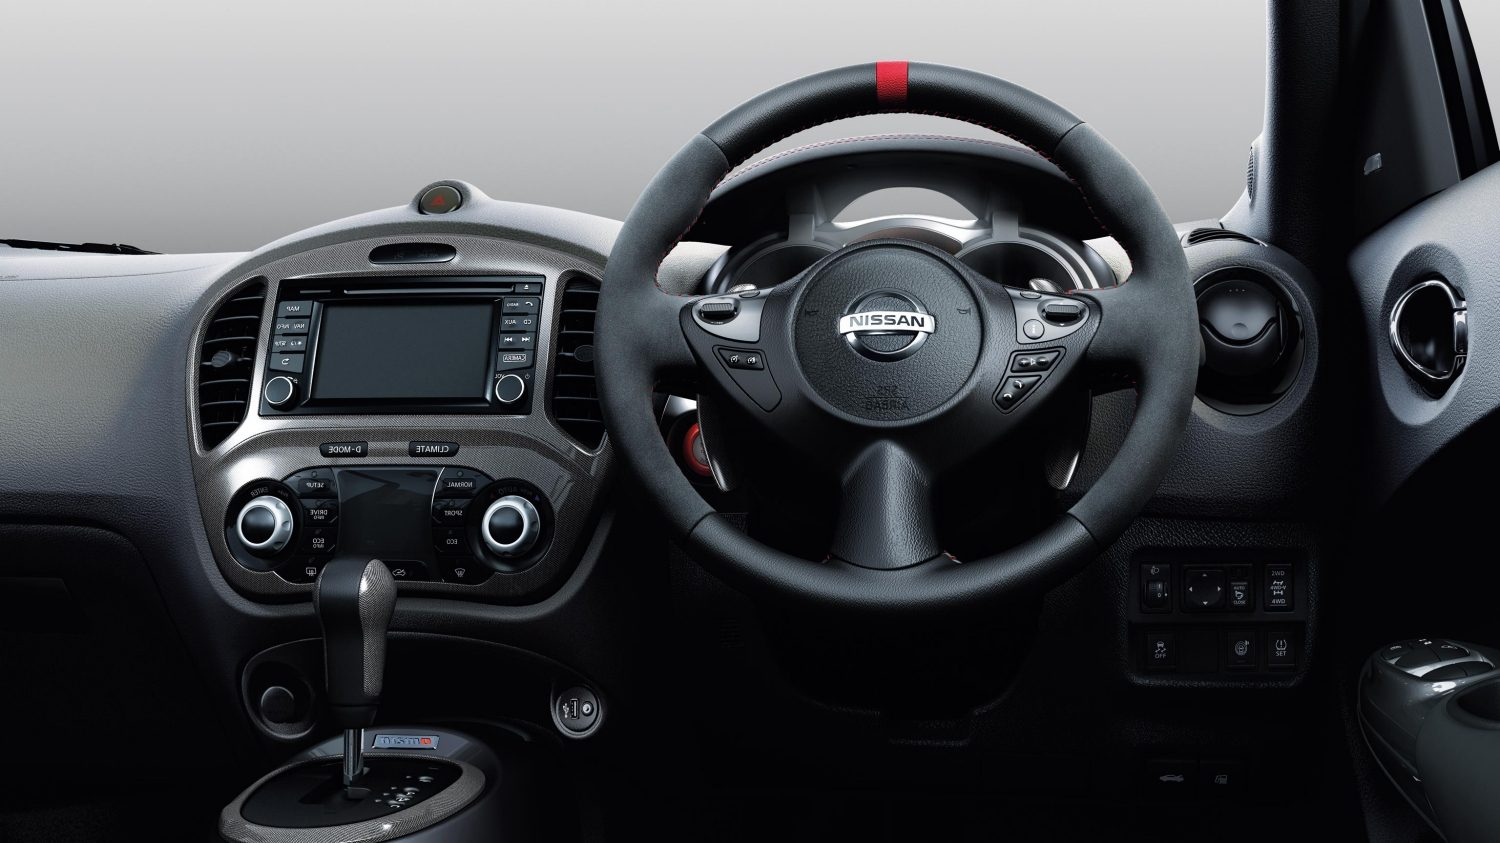 Compact & mini SUV Nismo RS - Small SUV interior | Nissan Juke